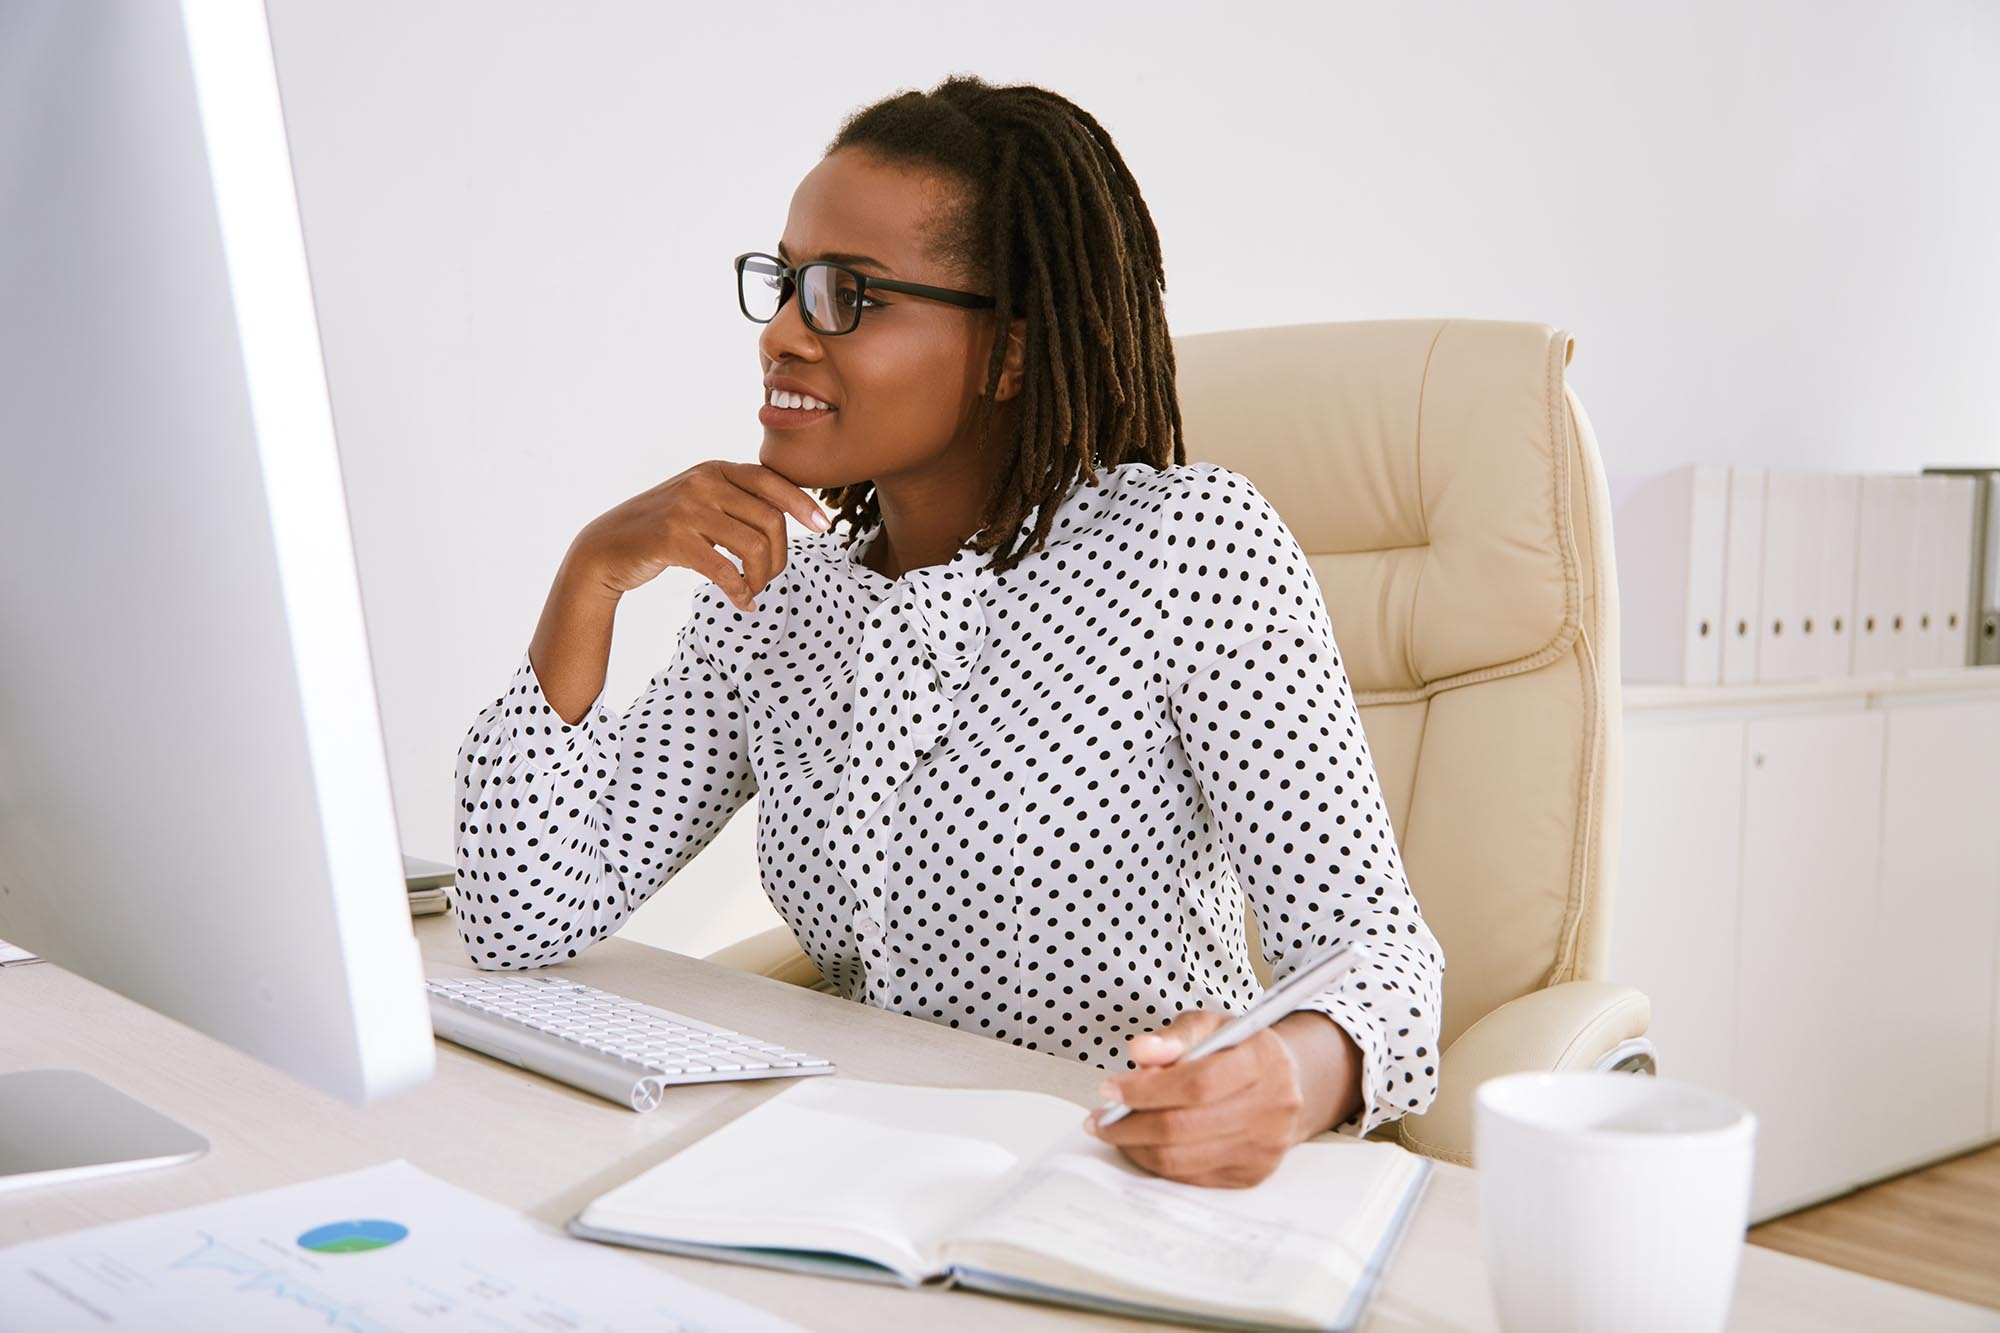 African-American business executive reading data on computer screen and taking notes